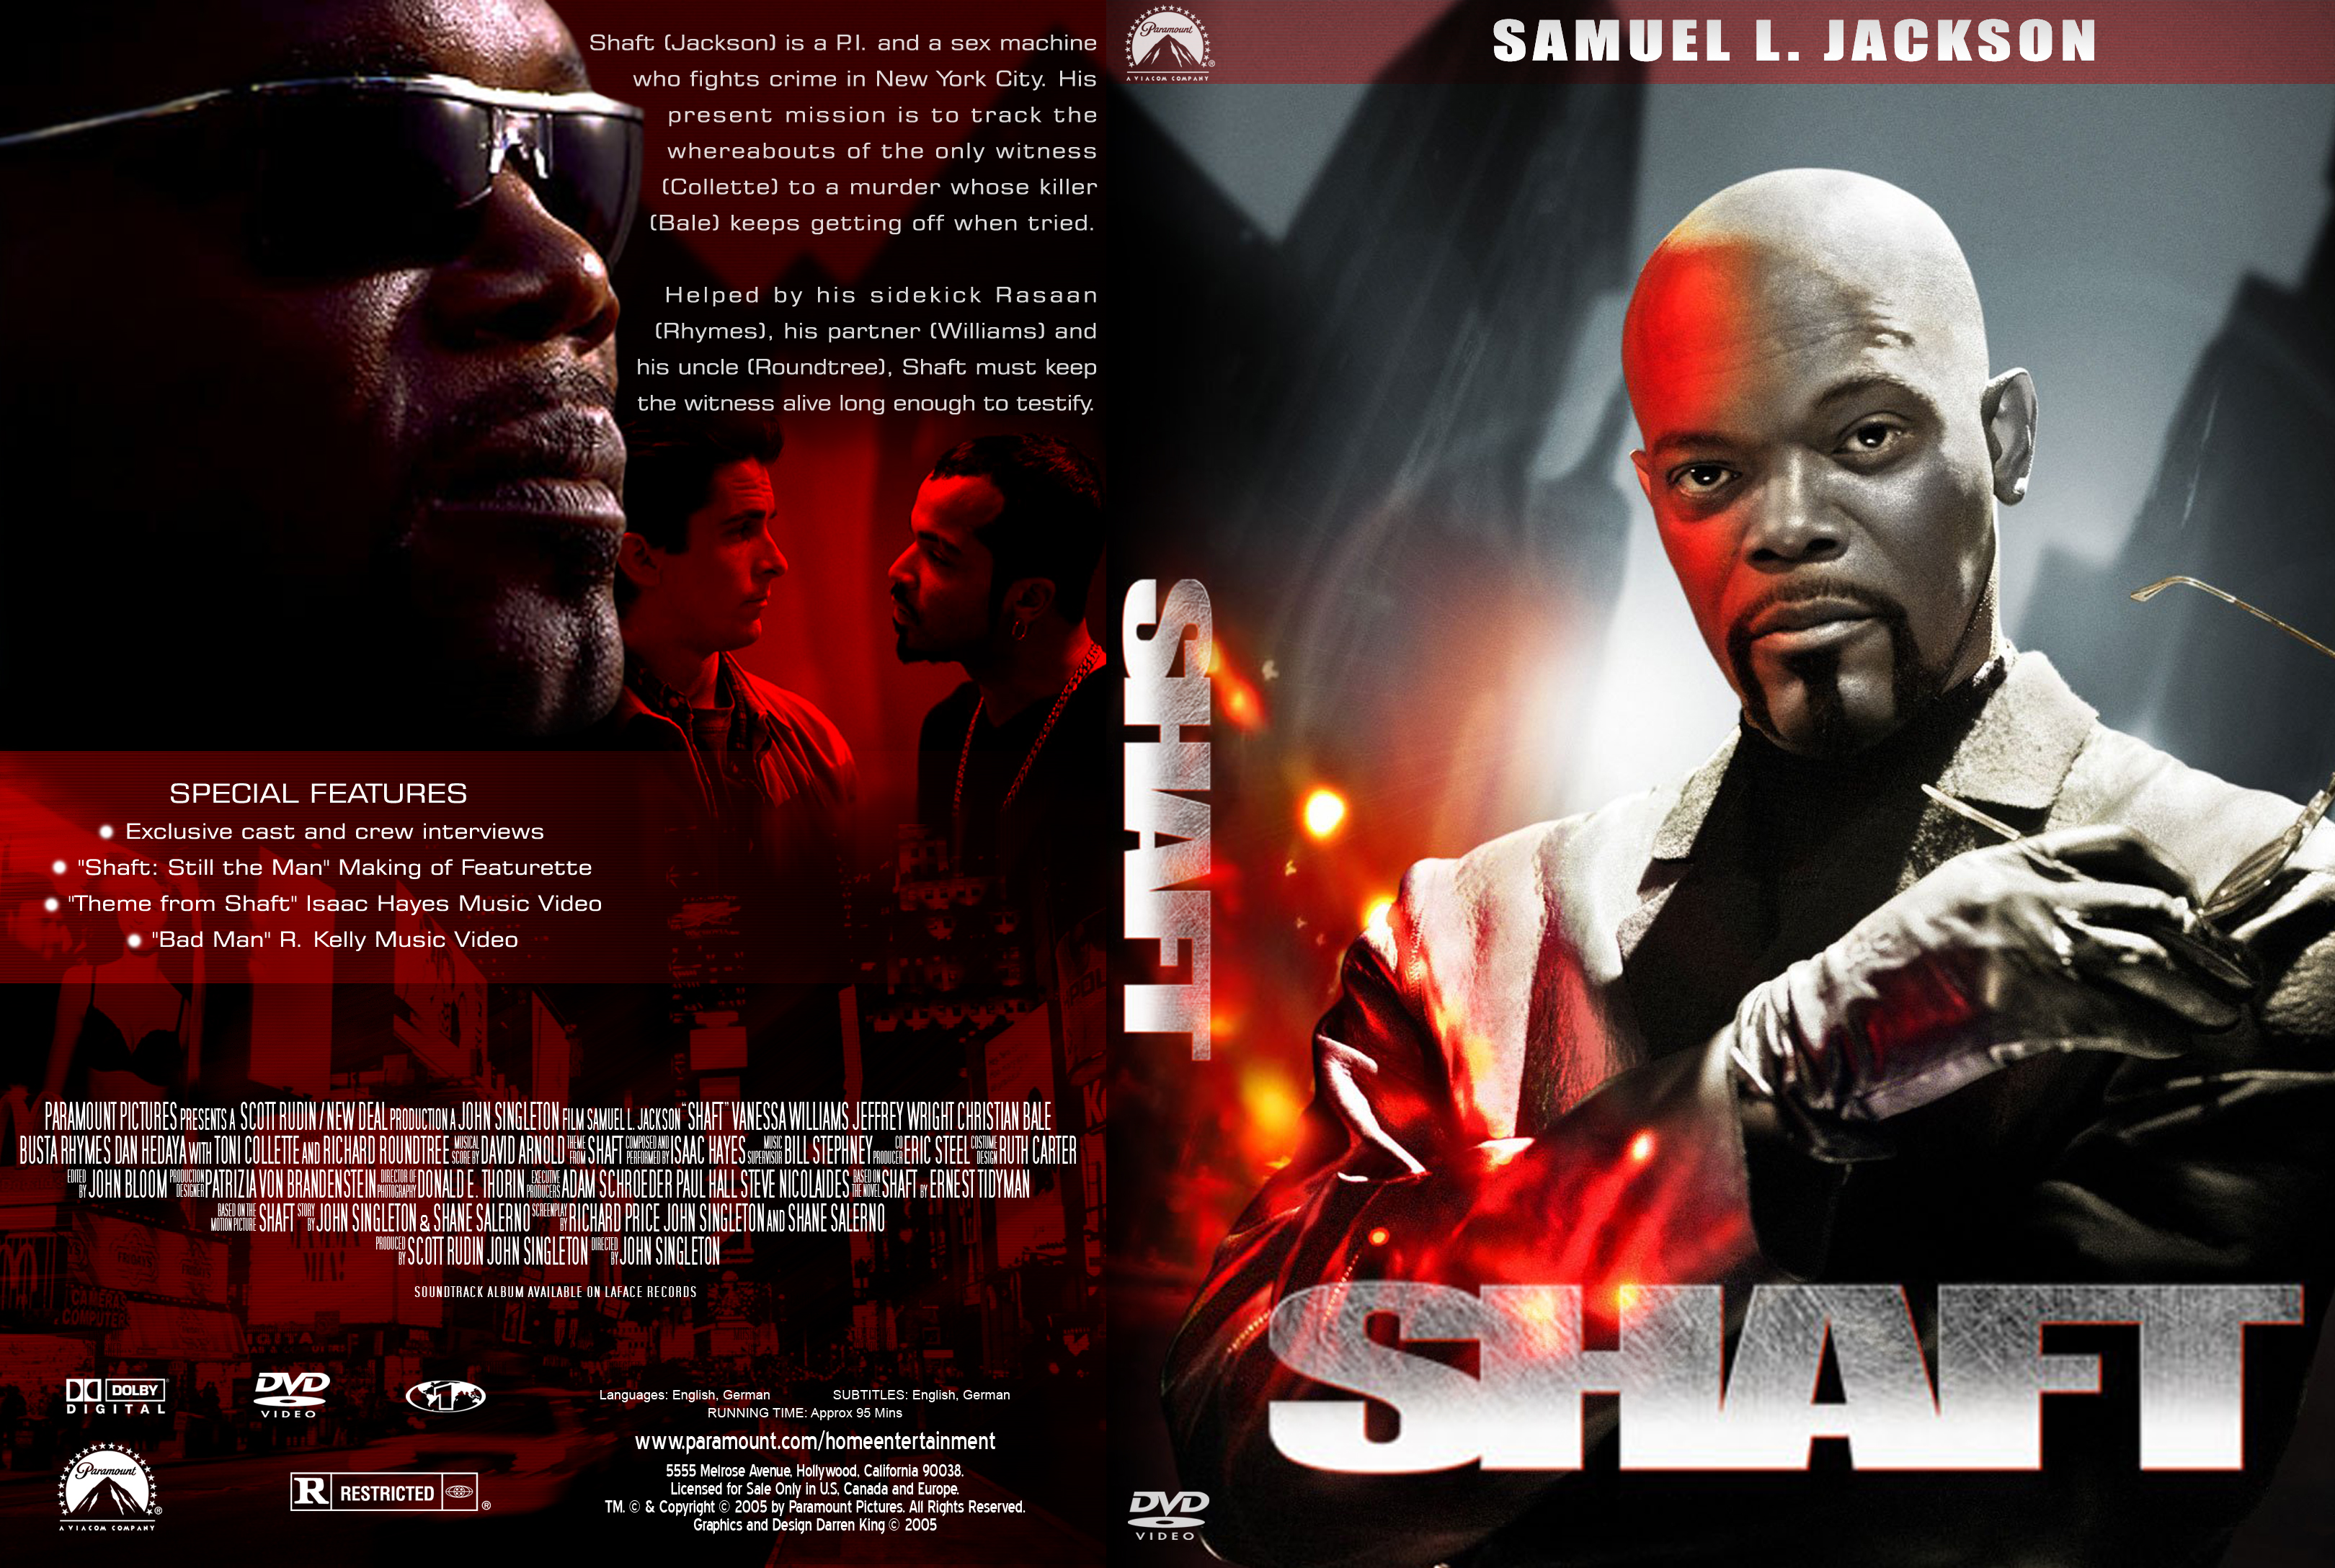 Movie Posters 2000: Shaft (2000) DVD Cover